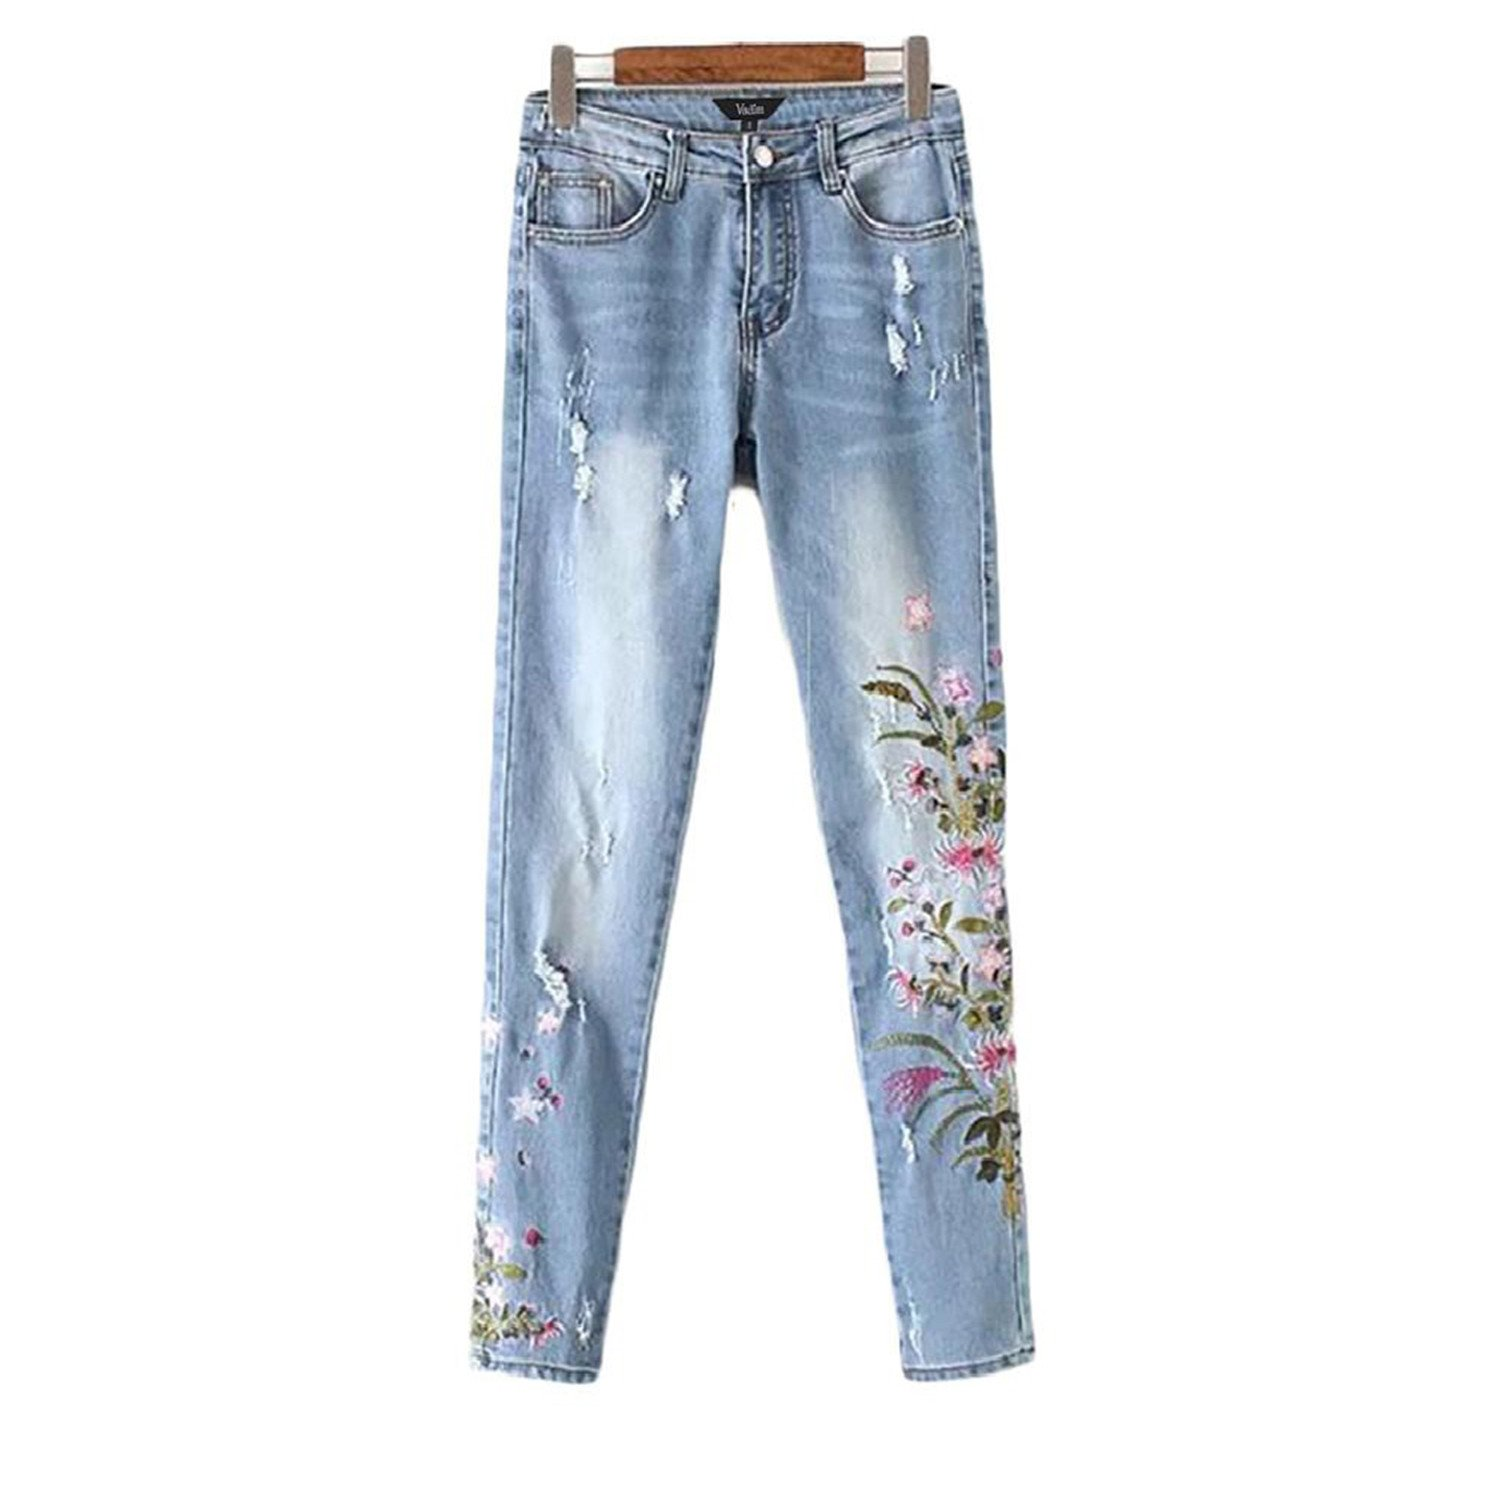 earring n Women Vintage Floral Embroidery Holes Denim Jeans Pockets Ankle-Length Pants Ladies Casual Brand Trousers KZ987 as Picture XL